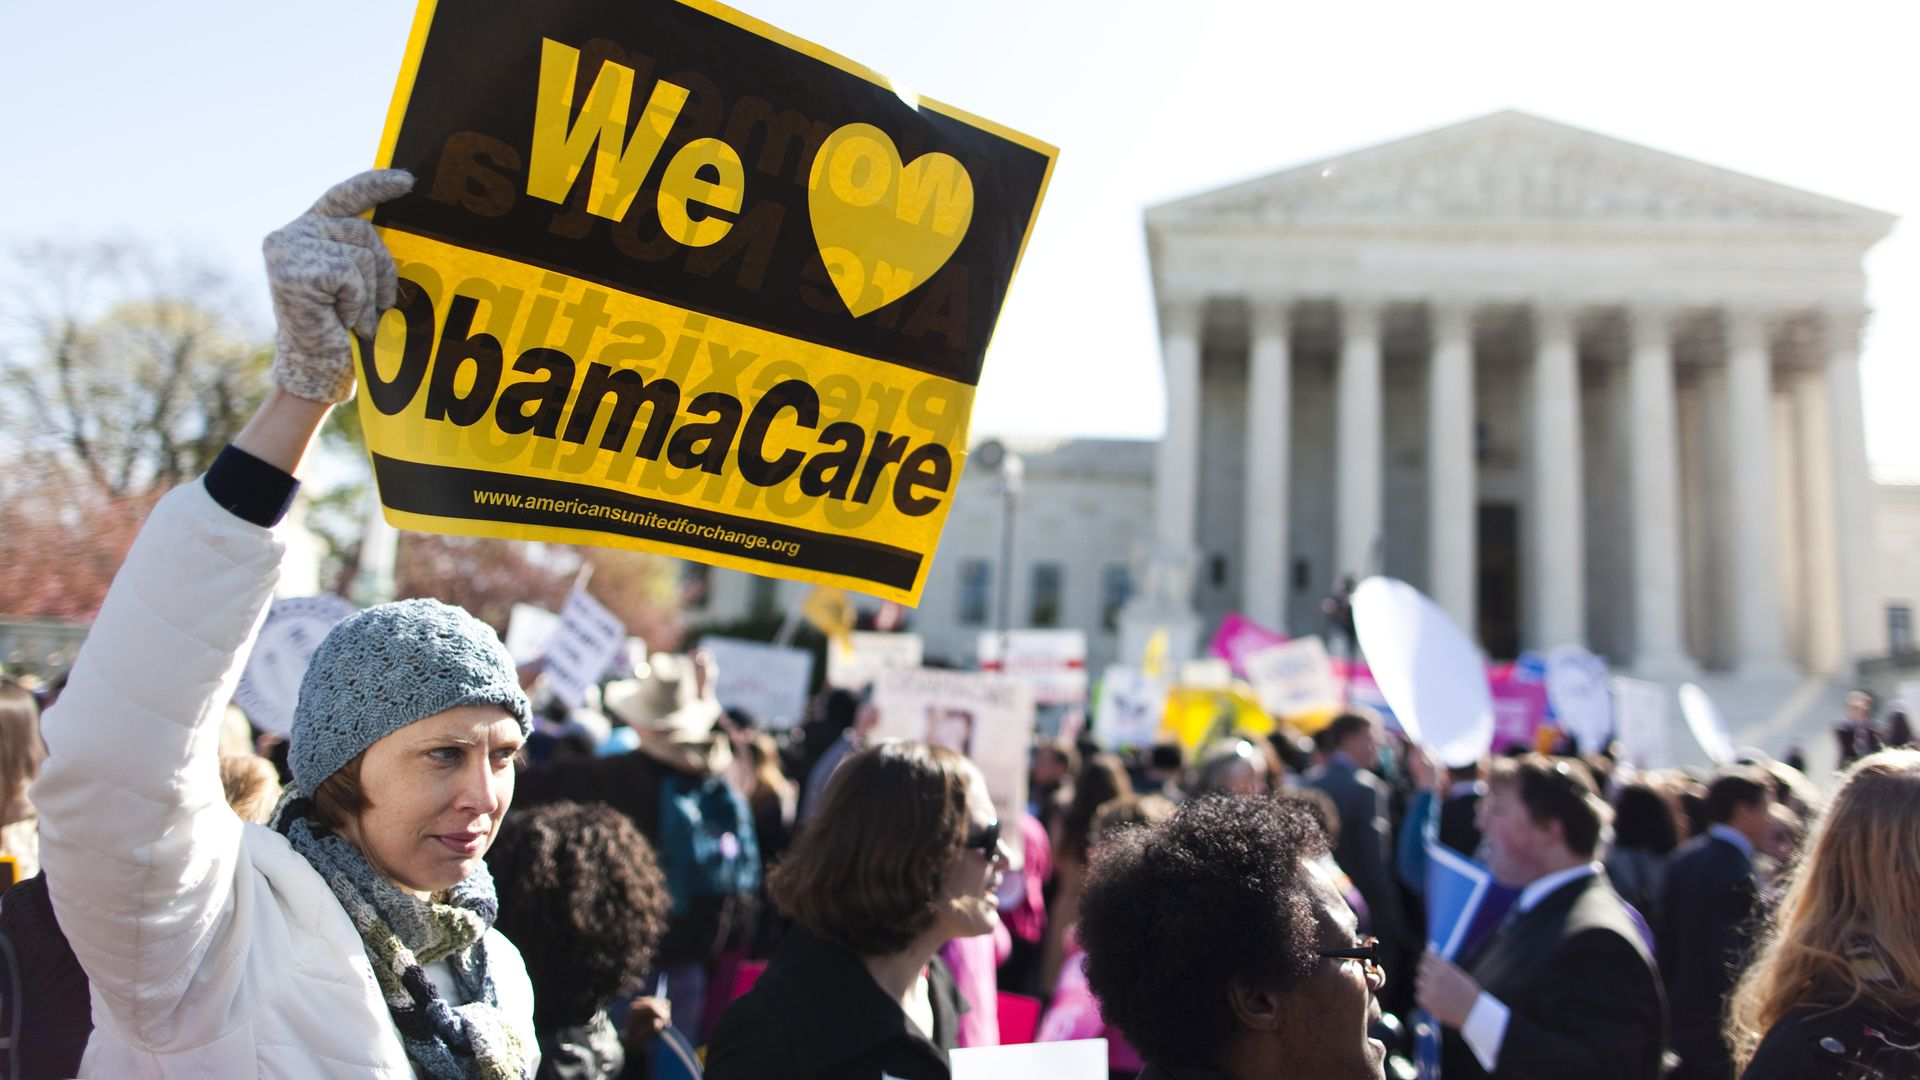 A protestor waving a pro-ACA sign outside the Supreme Court